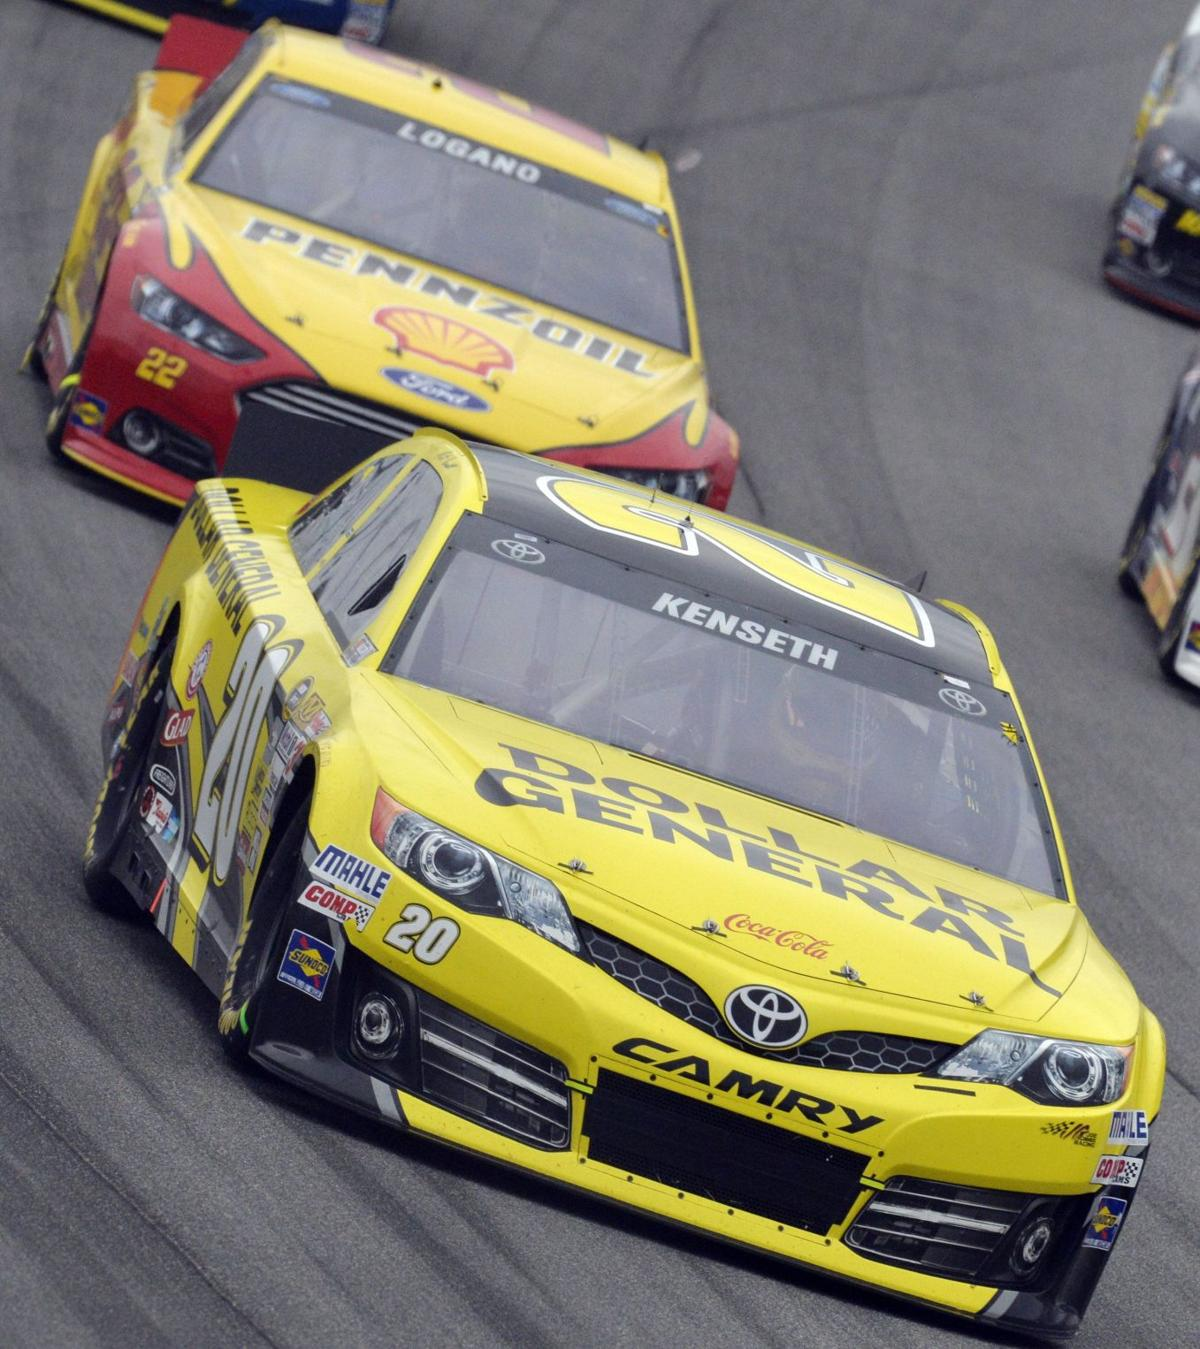 Kenseth wins opening Chase race at Chicago